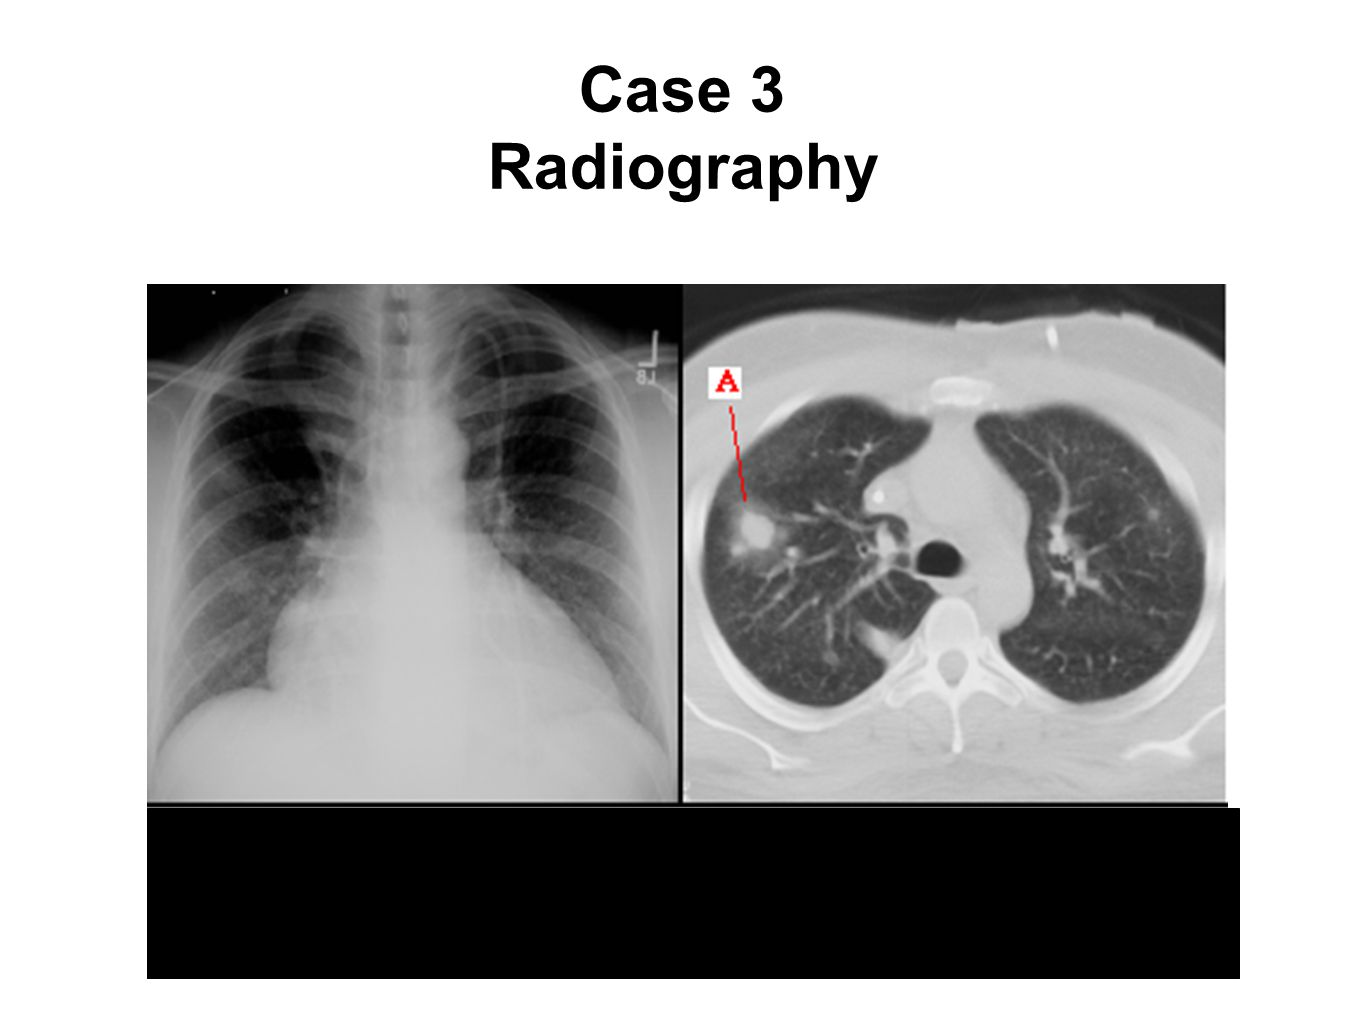 Case 3 Radiography